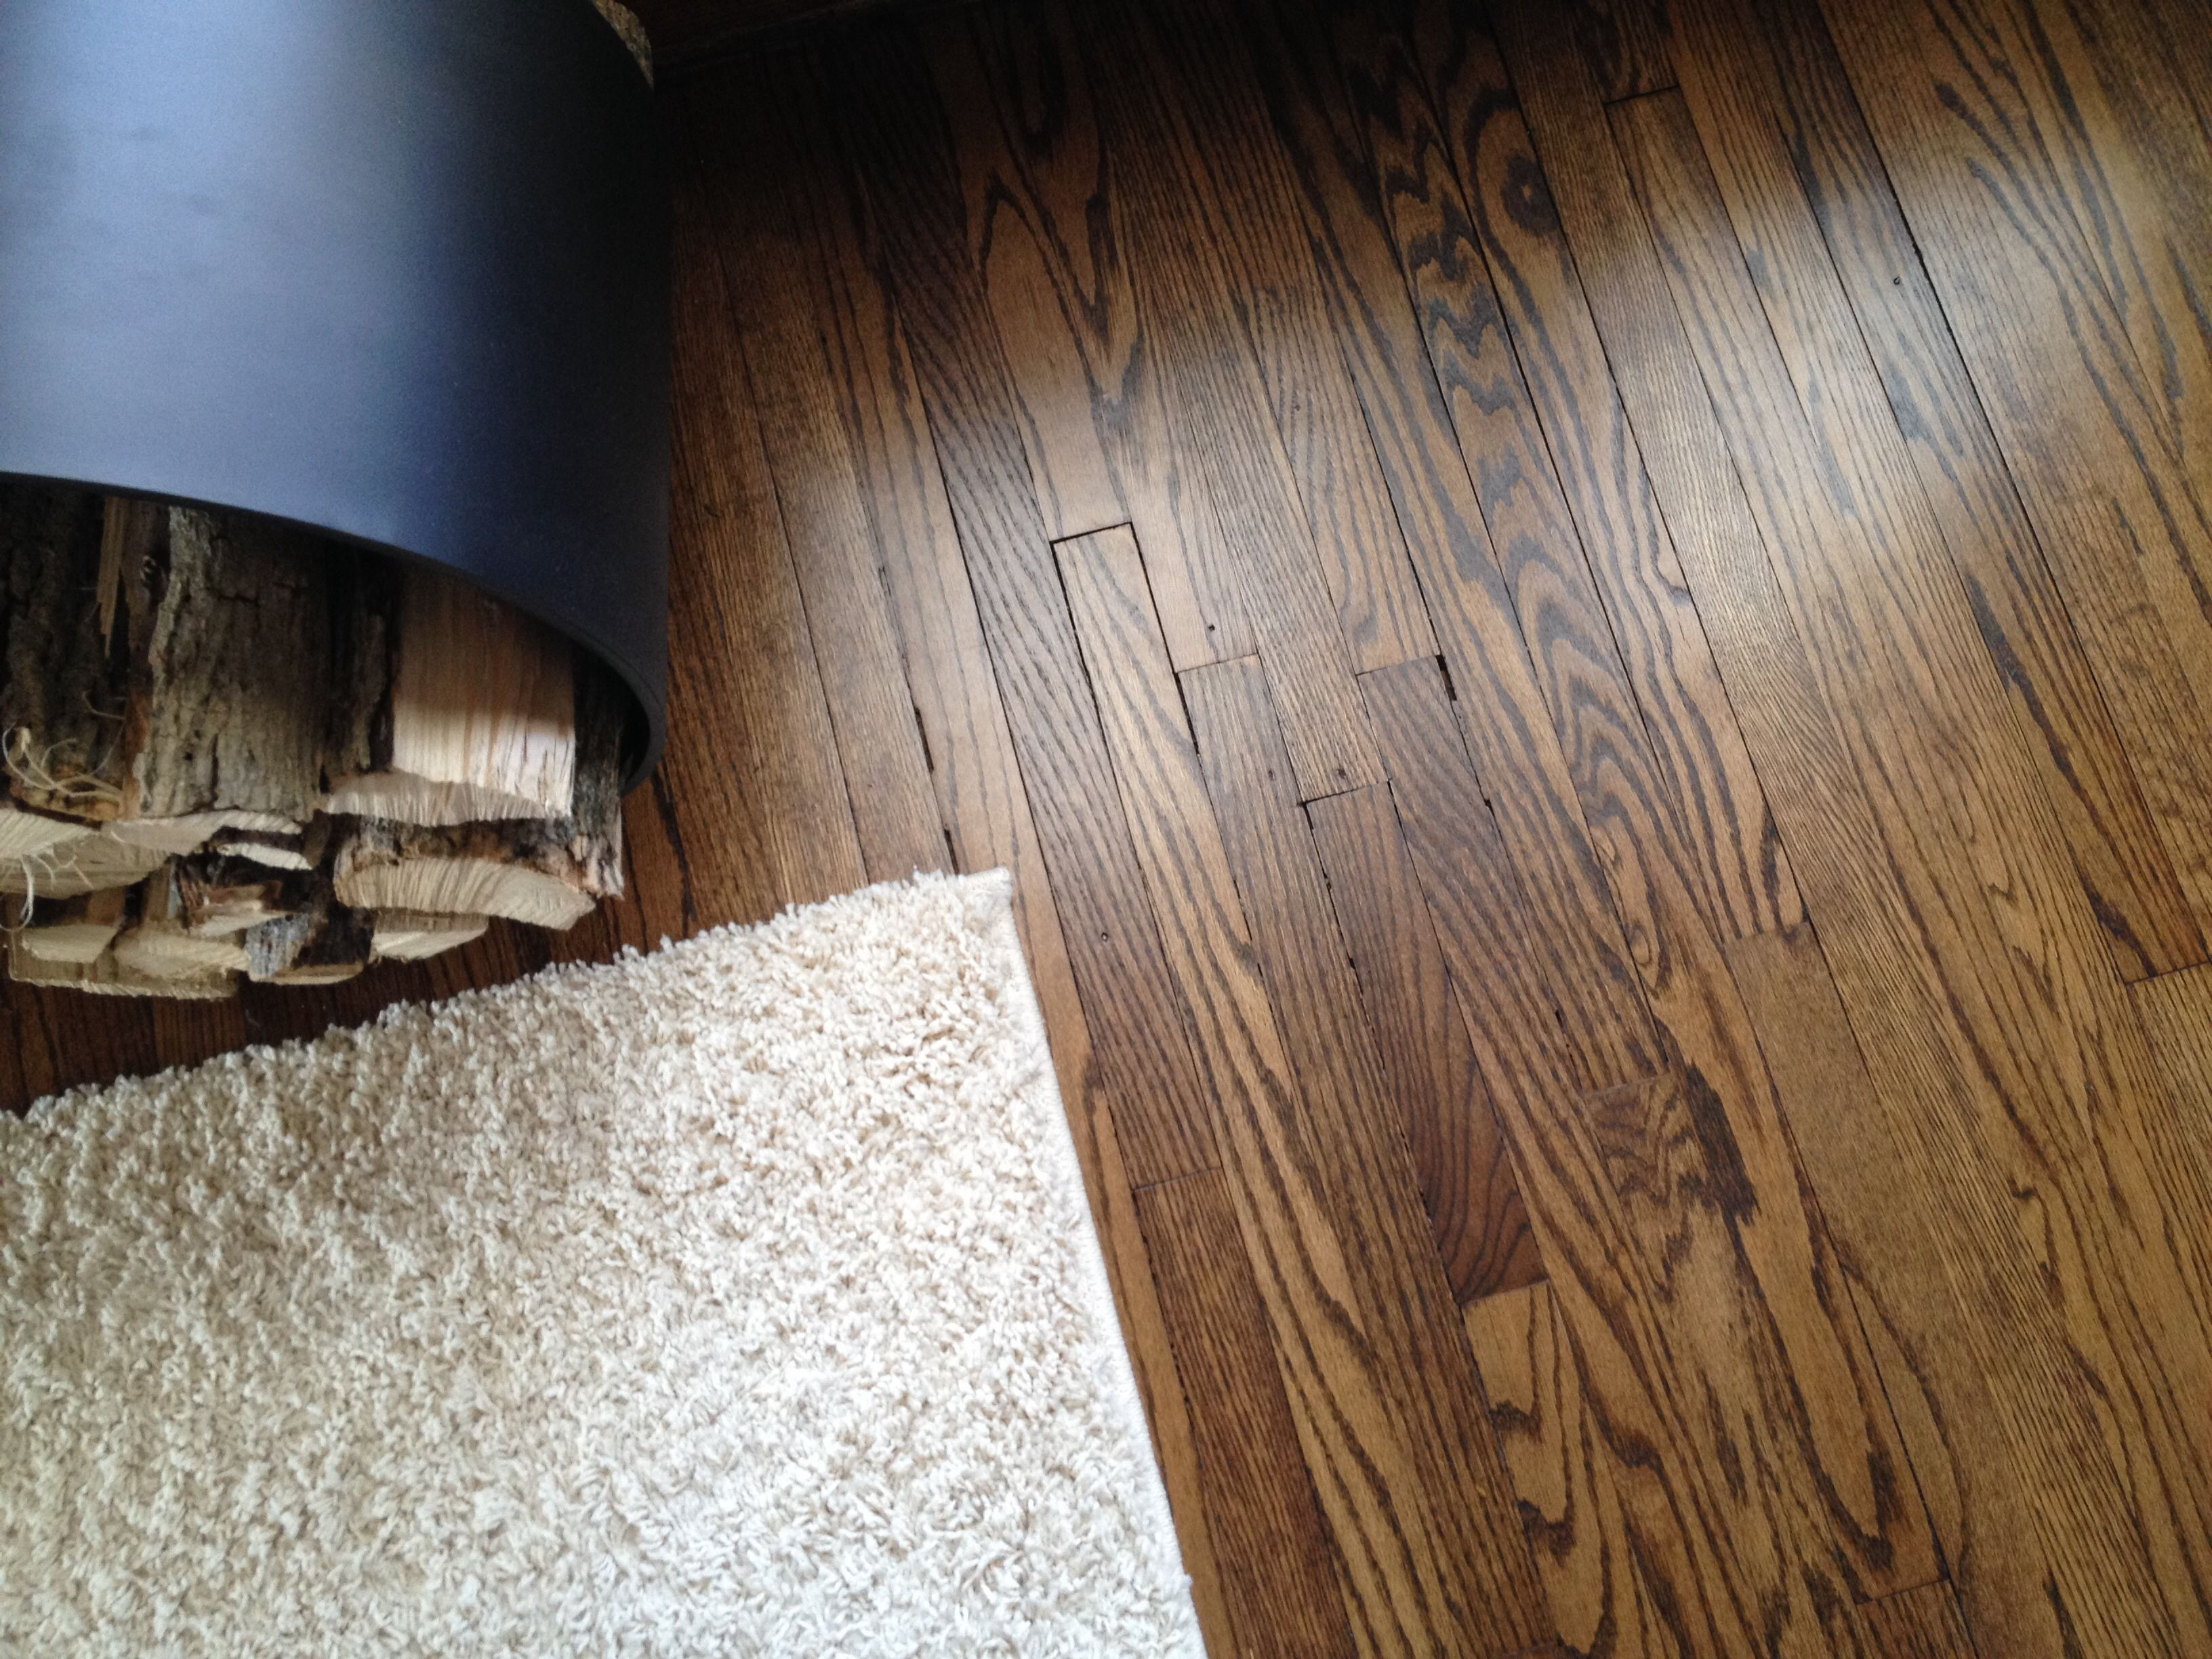 cost to refinish and stain hardwood floors of refinishing old hardwood floors 113 year old original oak floors pertaining to refinishing old hardwood floors 113 year old original oak floors refinished in espresso stain